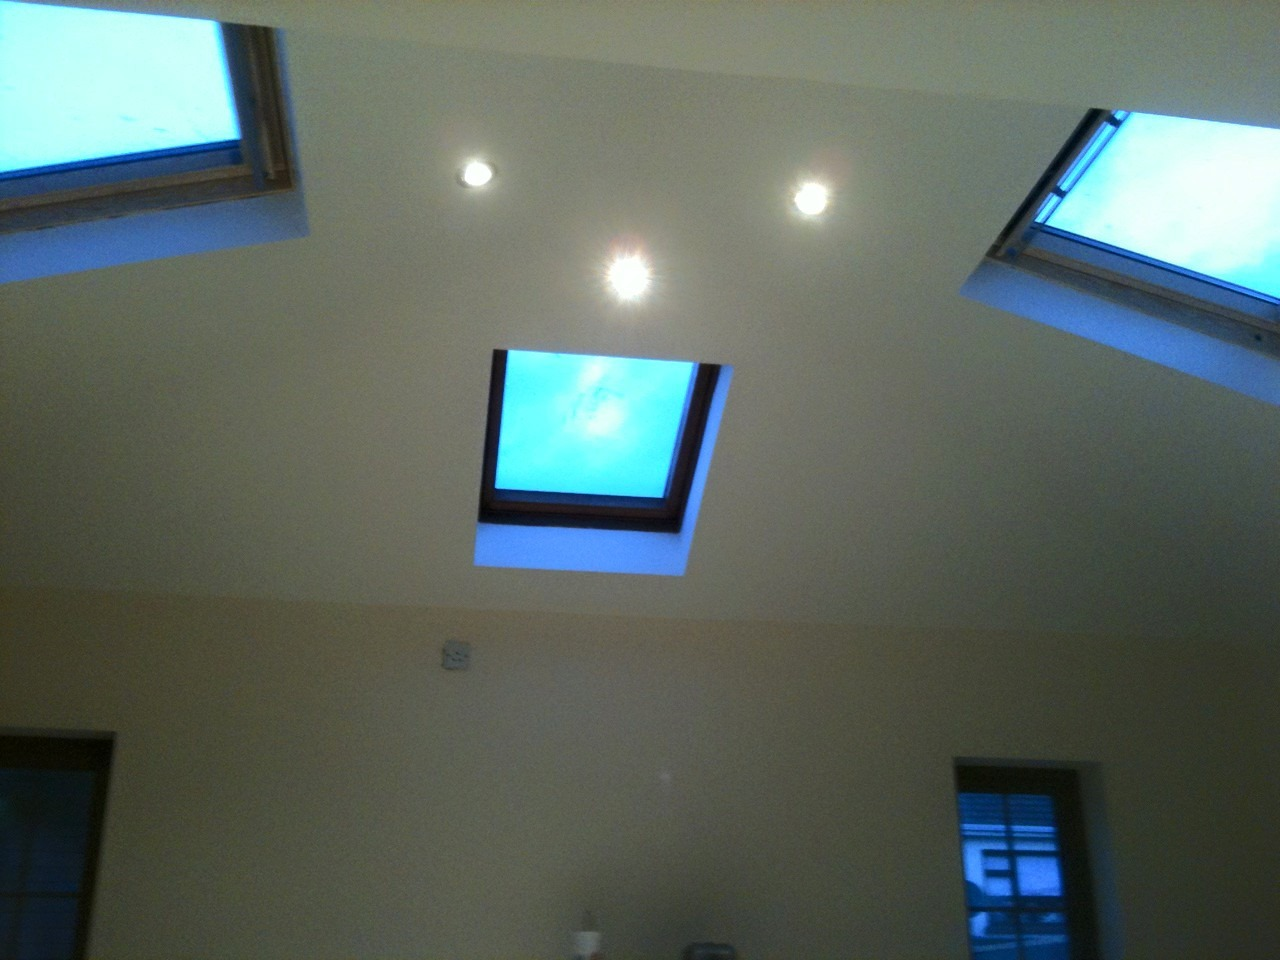 Image shows a recent plastering project completed by our plasterer in Withdean